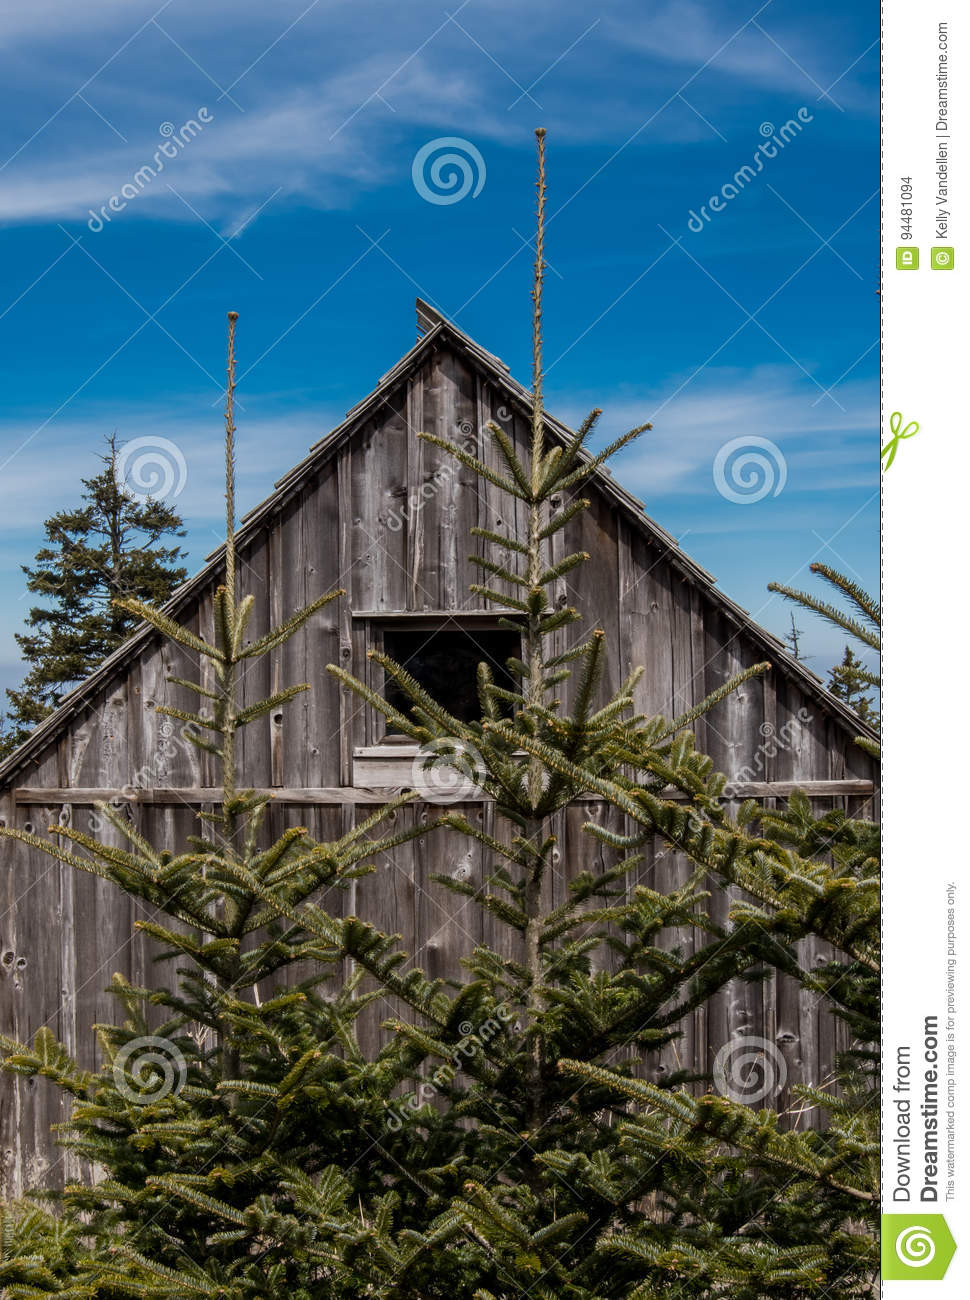 Two Small Pine Trees Grow Near Weathered Cabin Stock Photo Image